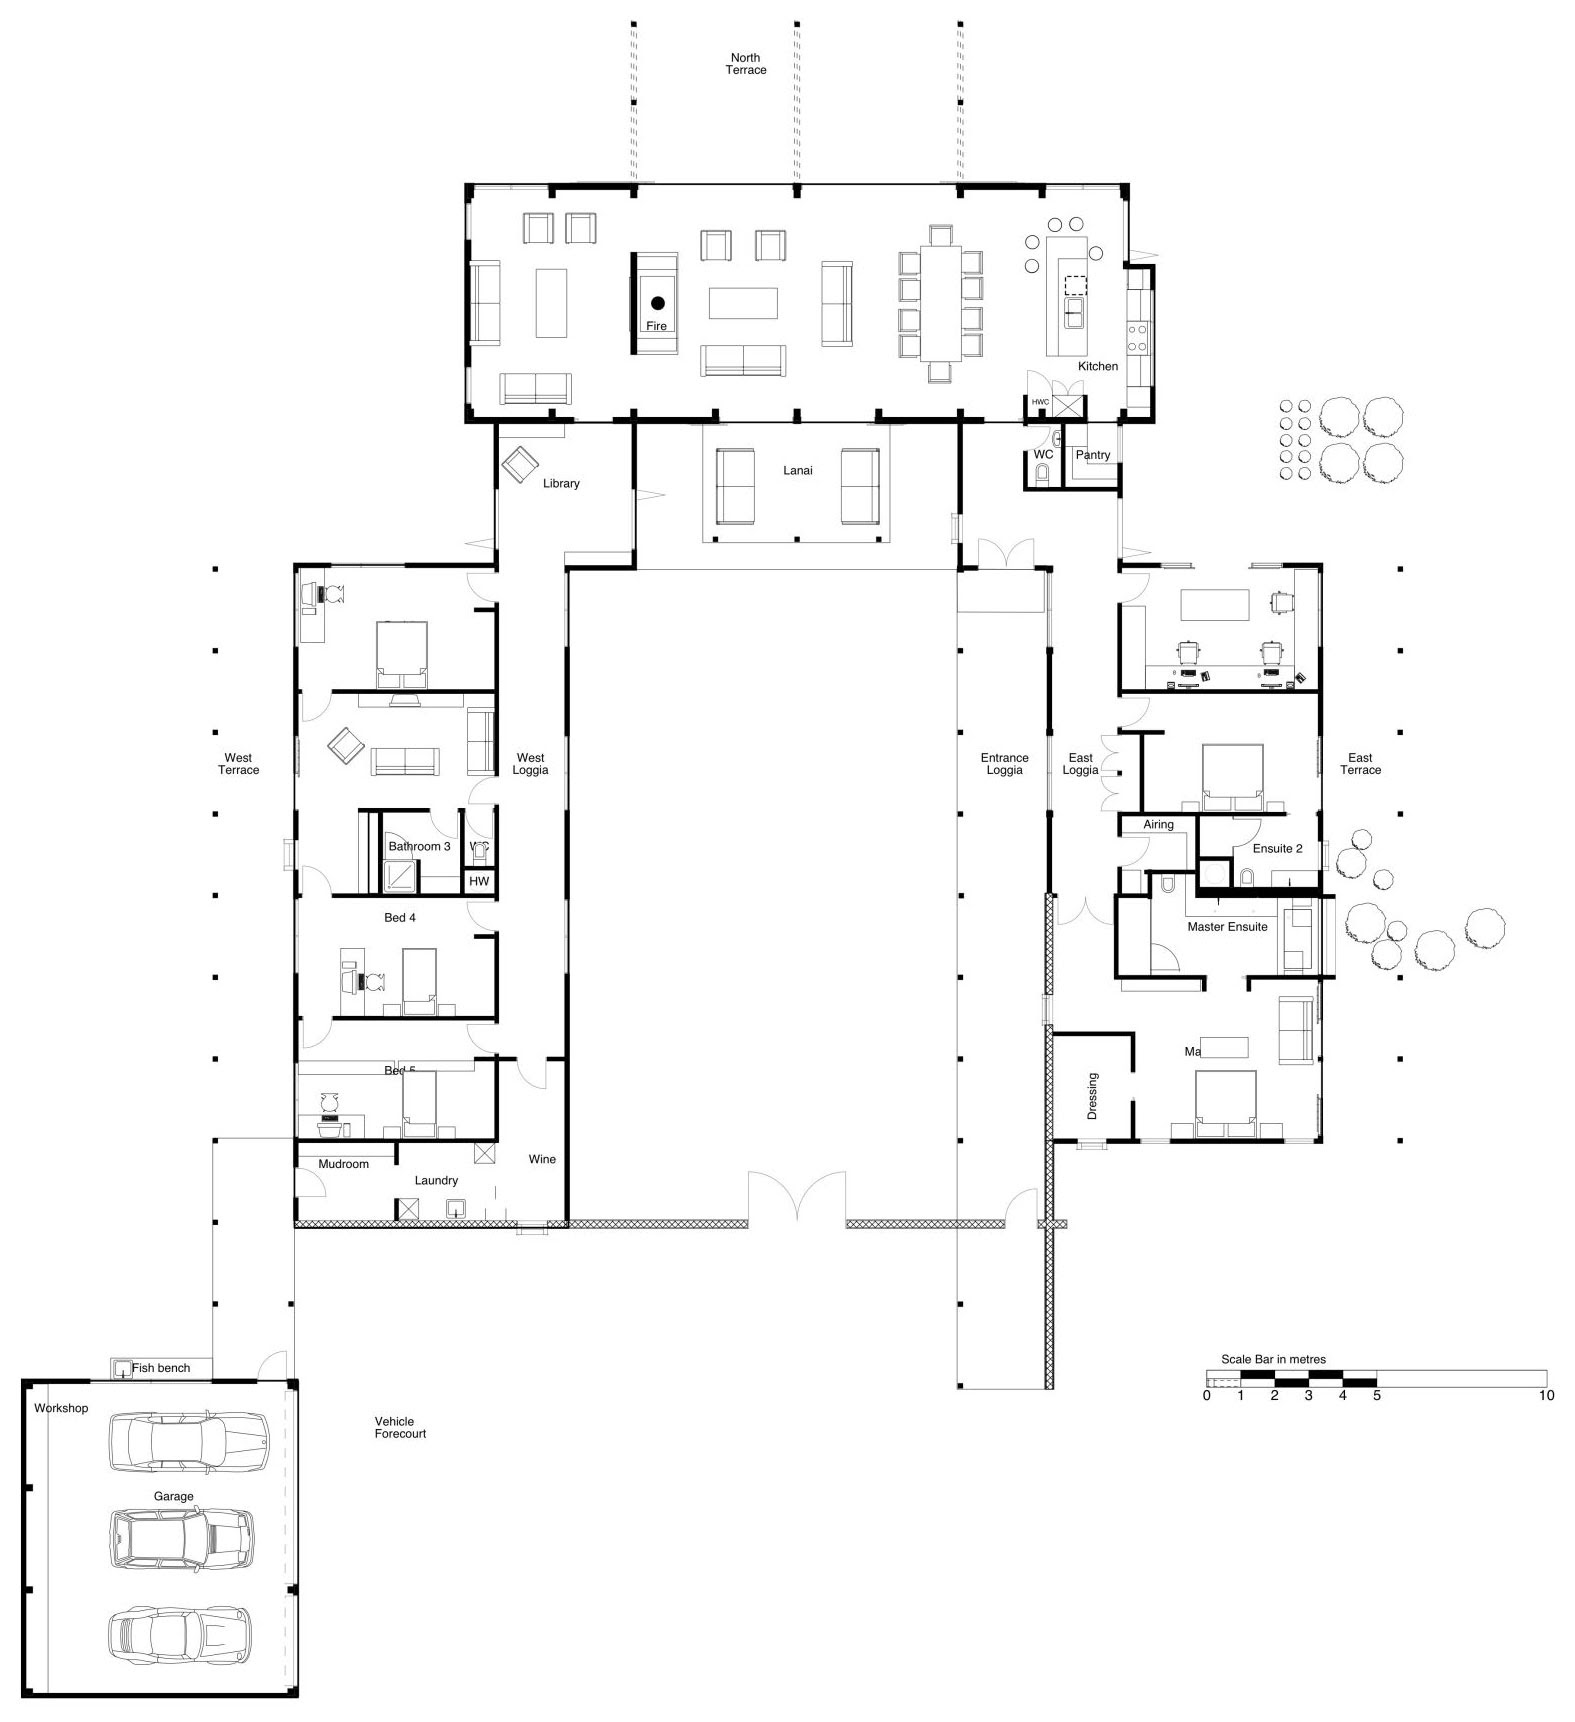 House Plans and Design: Modern House Plans New Zealand